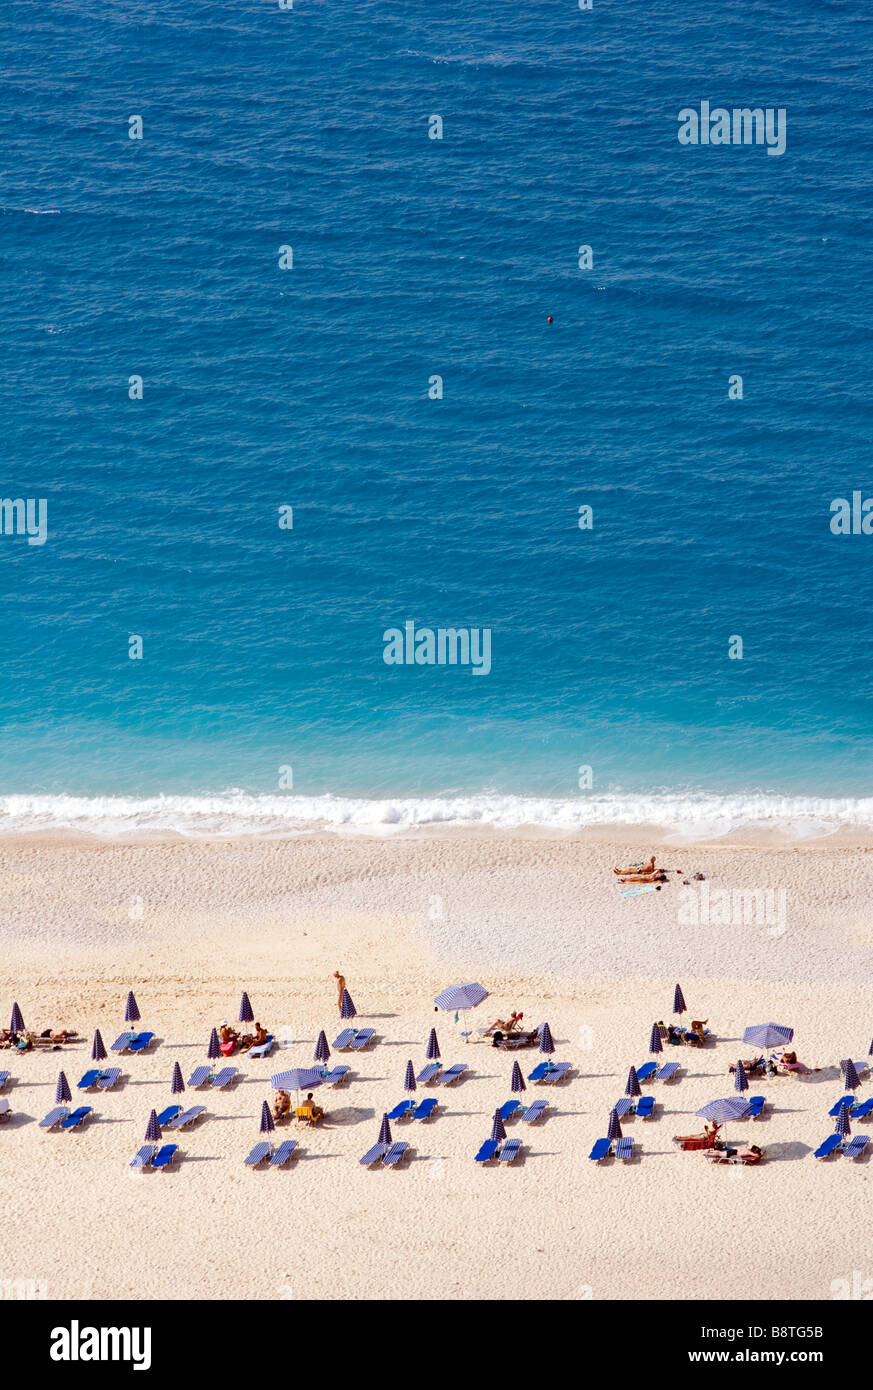 Mirtos beach, Kefalonia, Greece.Europe - Stock Image